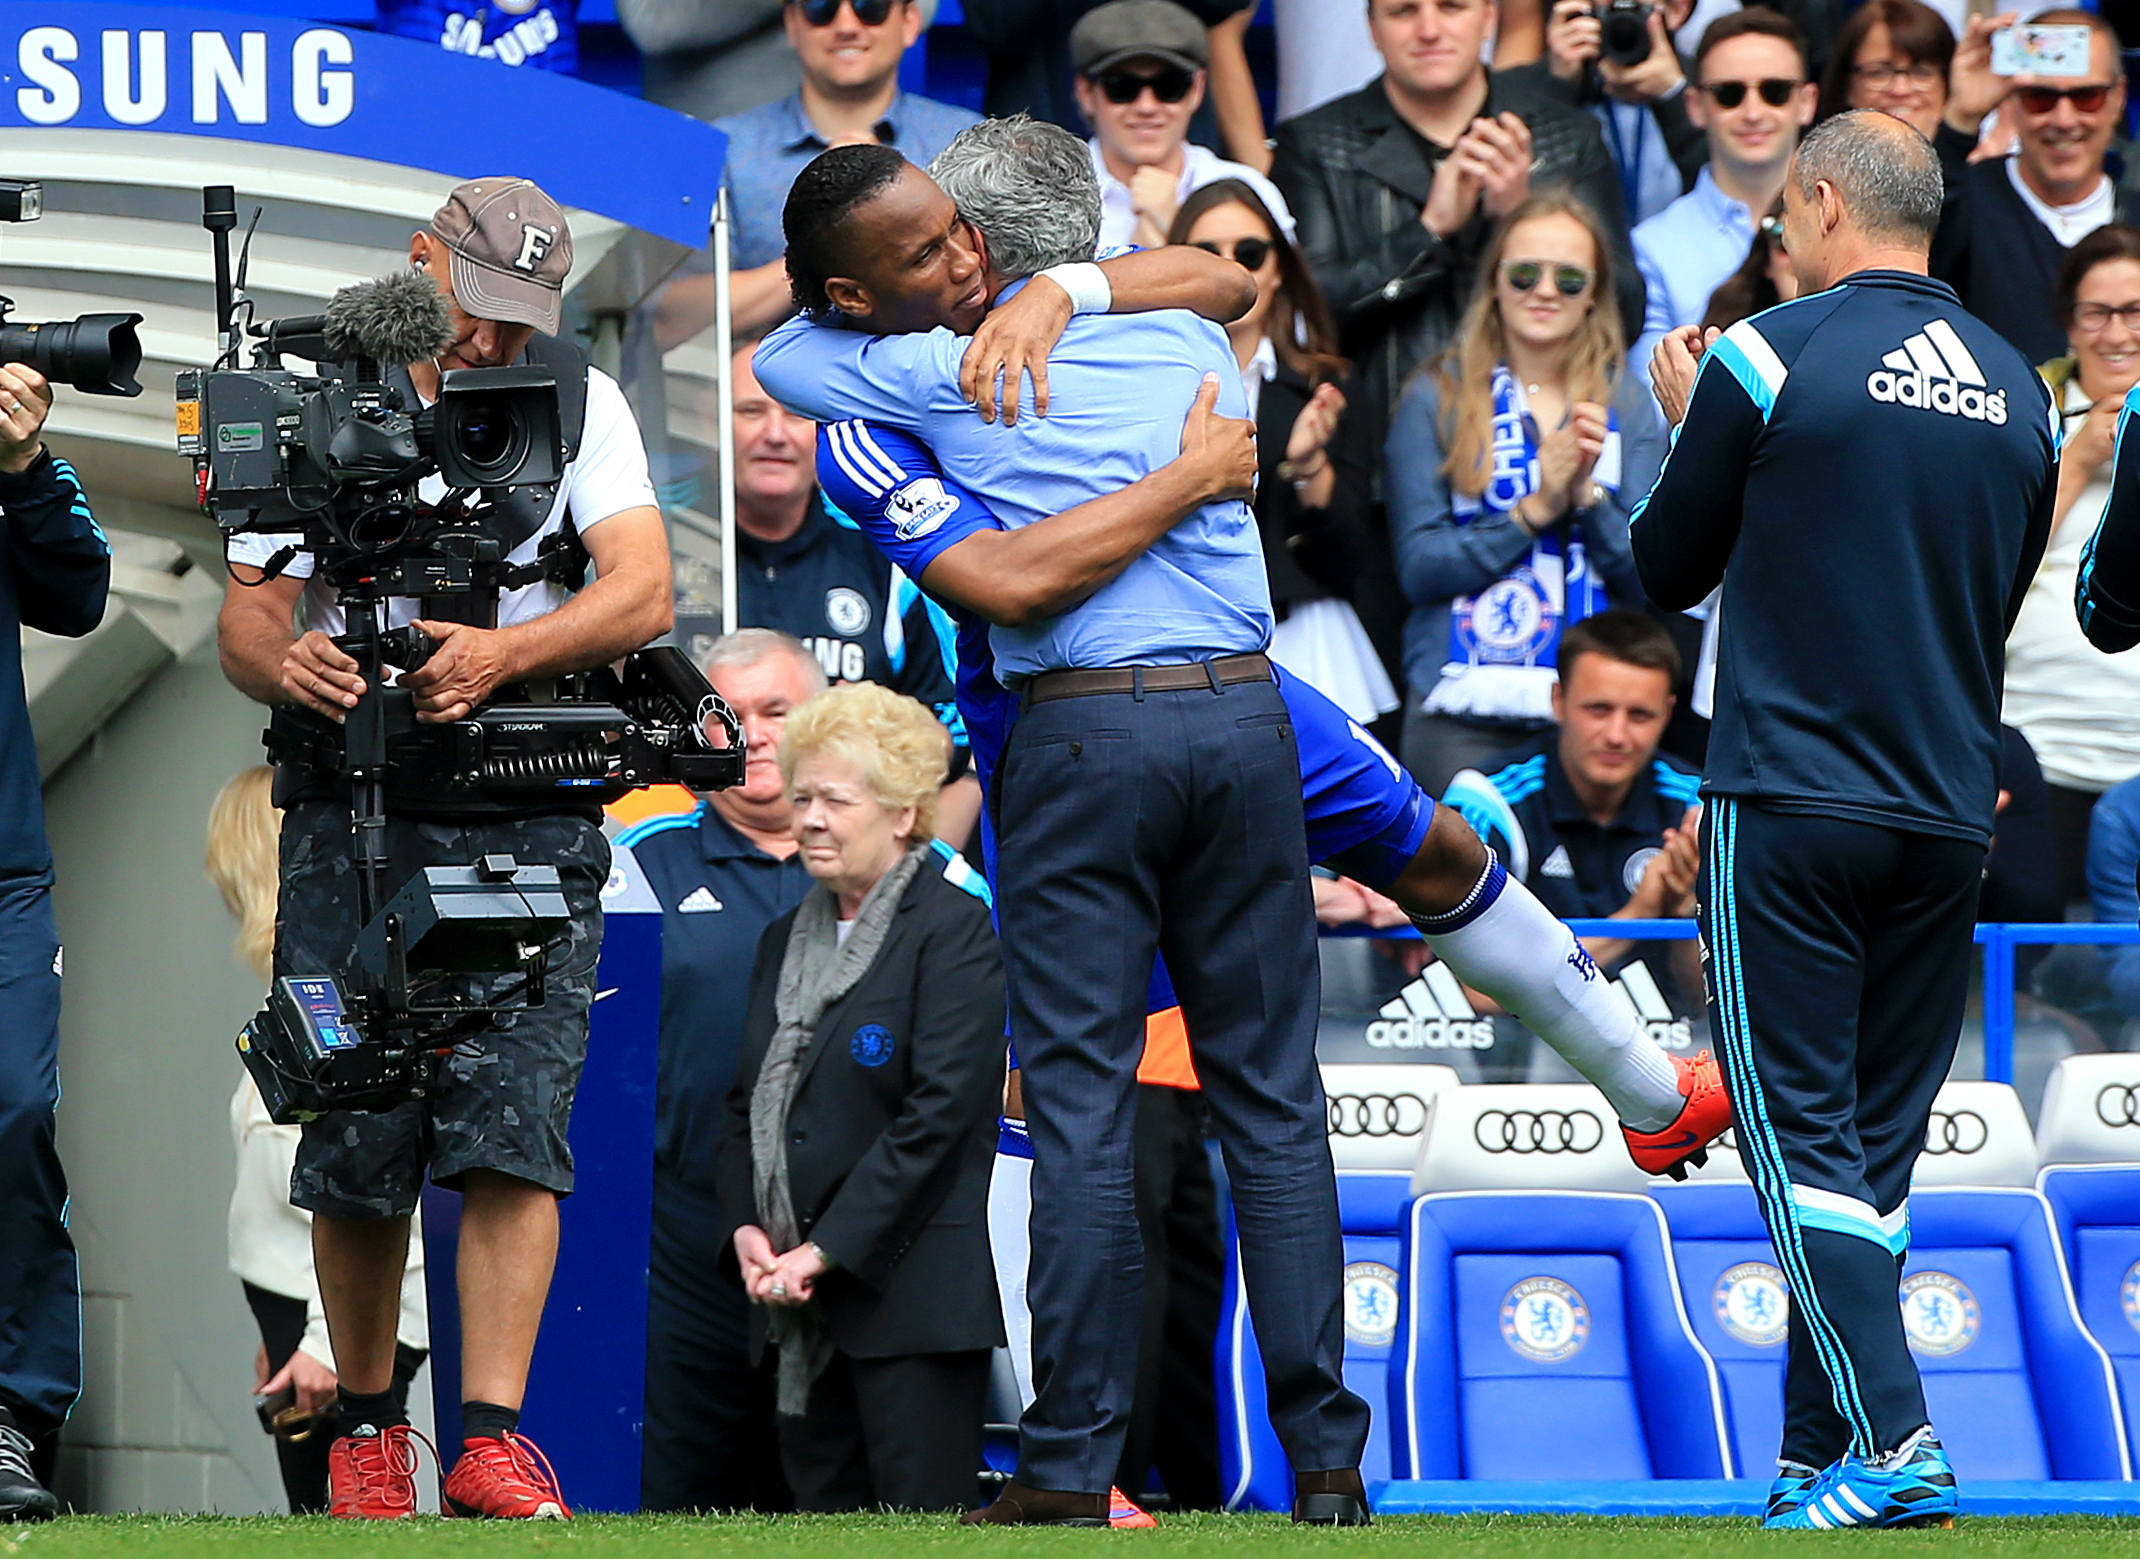 Drogba and Mourinho embrace after both men had returned to Stamford Bridge. Image: PA Images